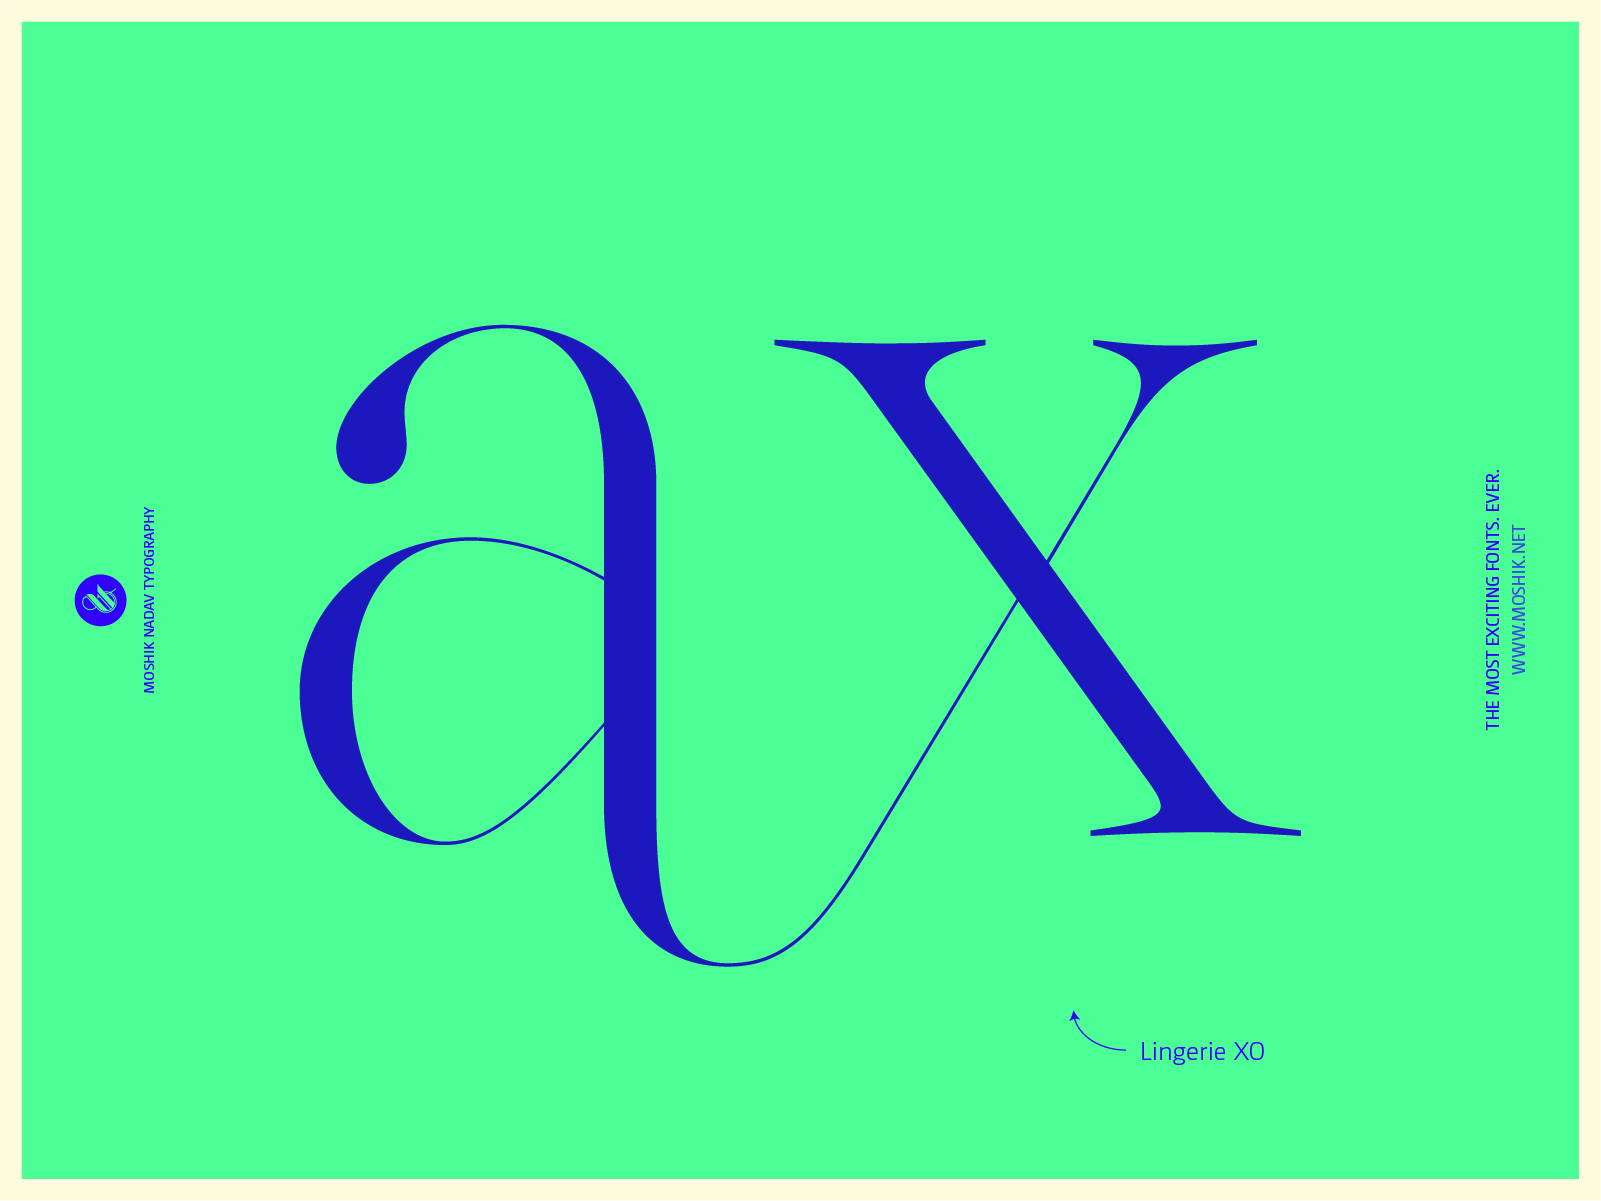 ax ligature, ax, Lingerie XO Typeface, fashion fonts, fashion typography, vogue fonts, must have fonts for fashion, best fonts 2021, must have fonts 2021, Fashion logos, vogue fonts, fashion magazine fonts, sexy logos, sexy fashion logo, fashion ligatures, XO